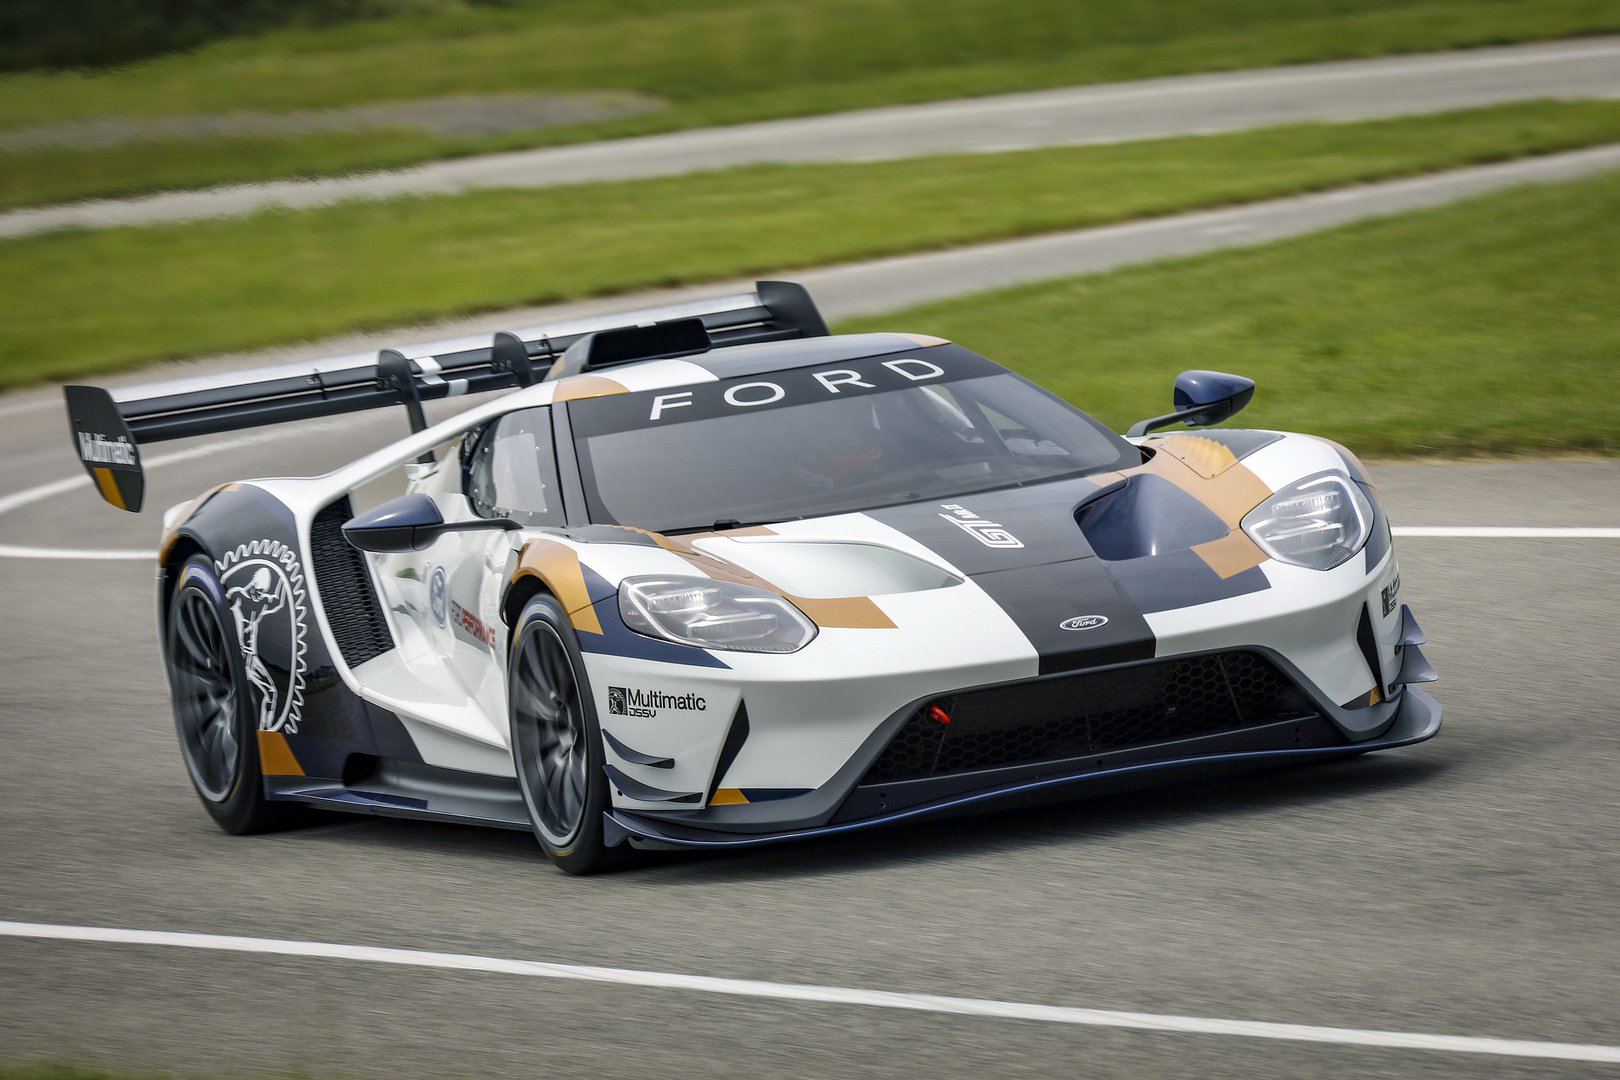 Ford Gt Mk2 Track Only Supercar Launched With Huge Aero Tweaks